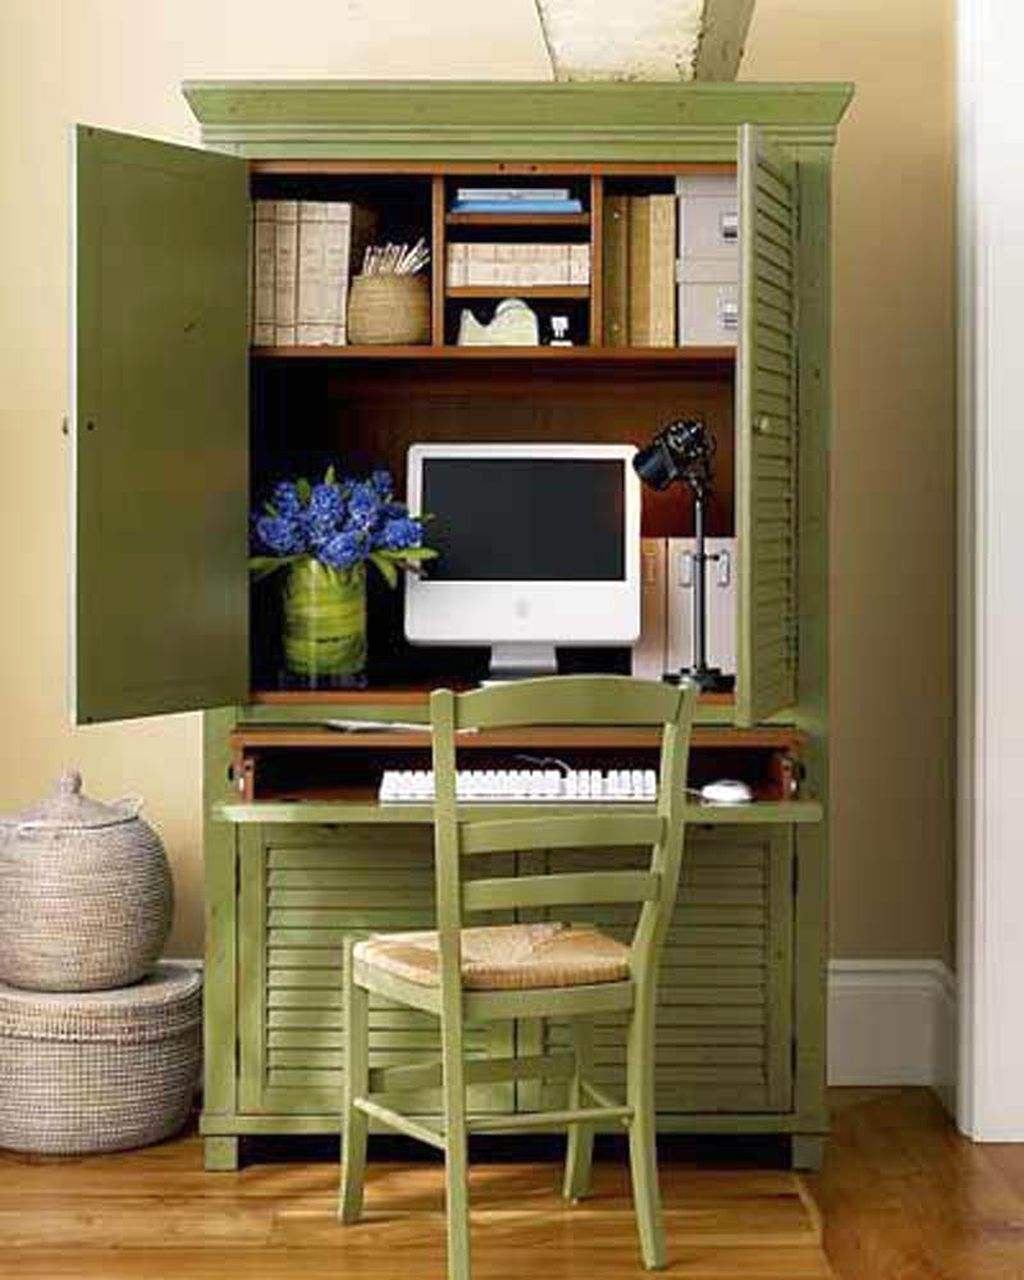 Green cupboard home office design ideas for small spaces for Home office decor pictures